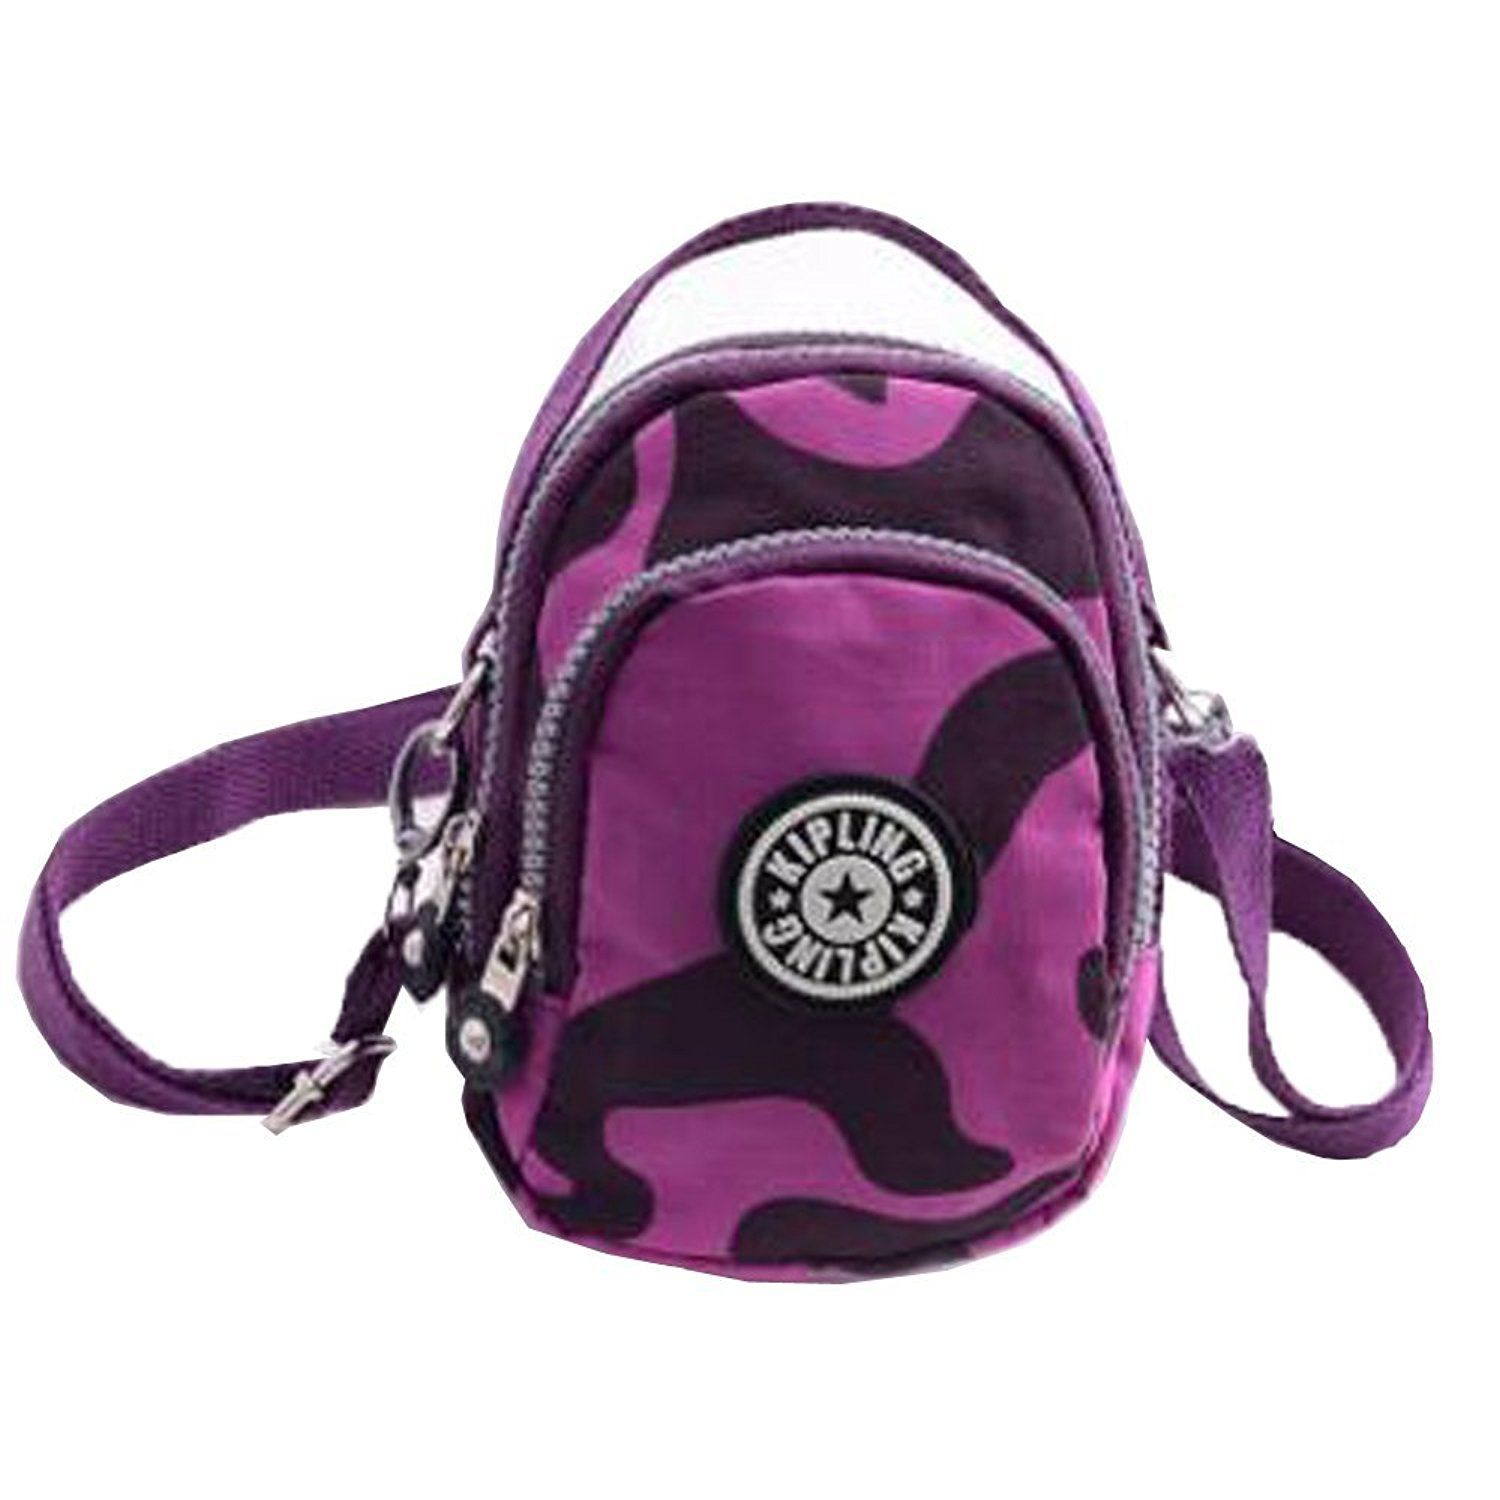 4806ddcf57 Hot Sell Women s Shoulder Messenger Purple Totem Bags Multifunction Nylon  Casual Handbags Zipper Toe Handbags -